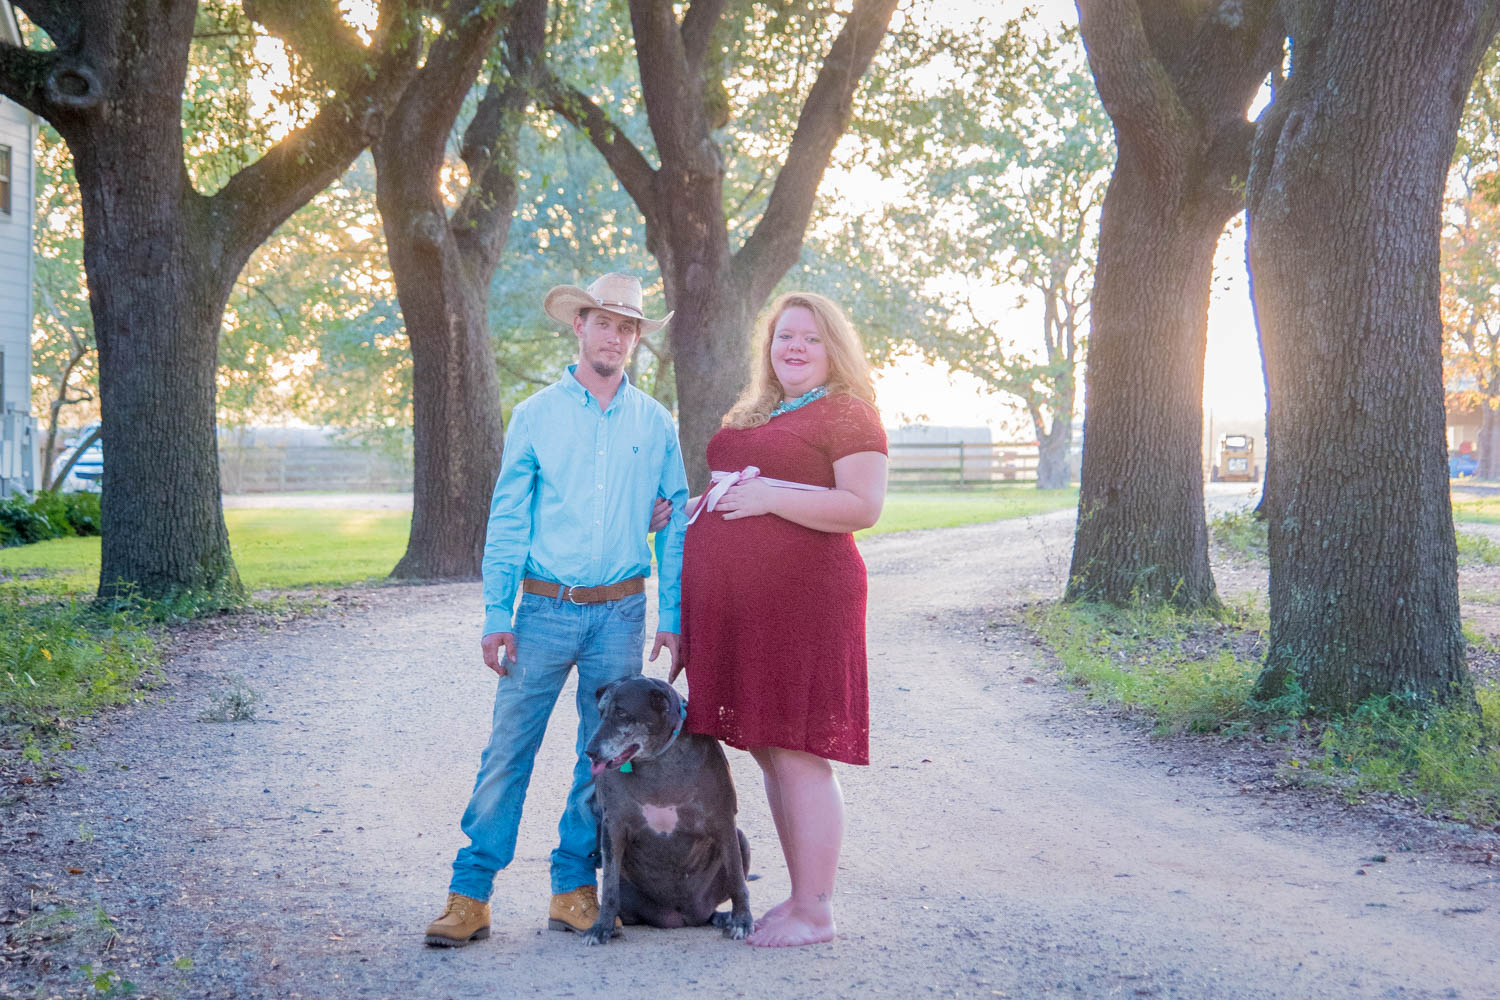 montgomery_texas_Maternity_photo_session_mazzola